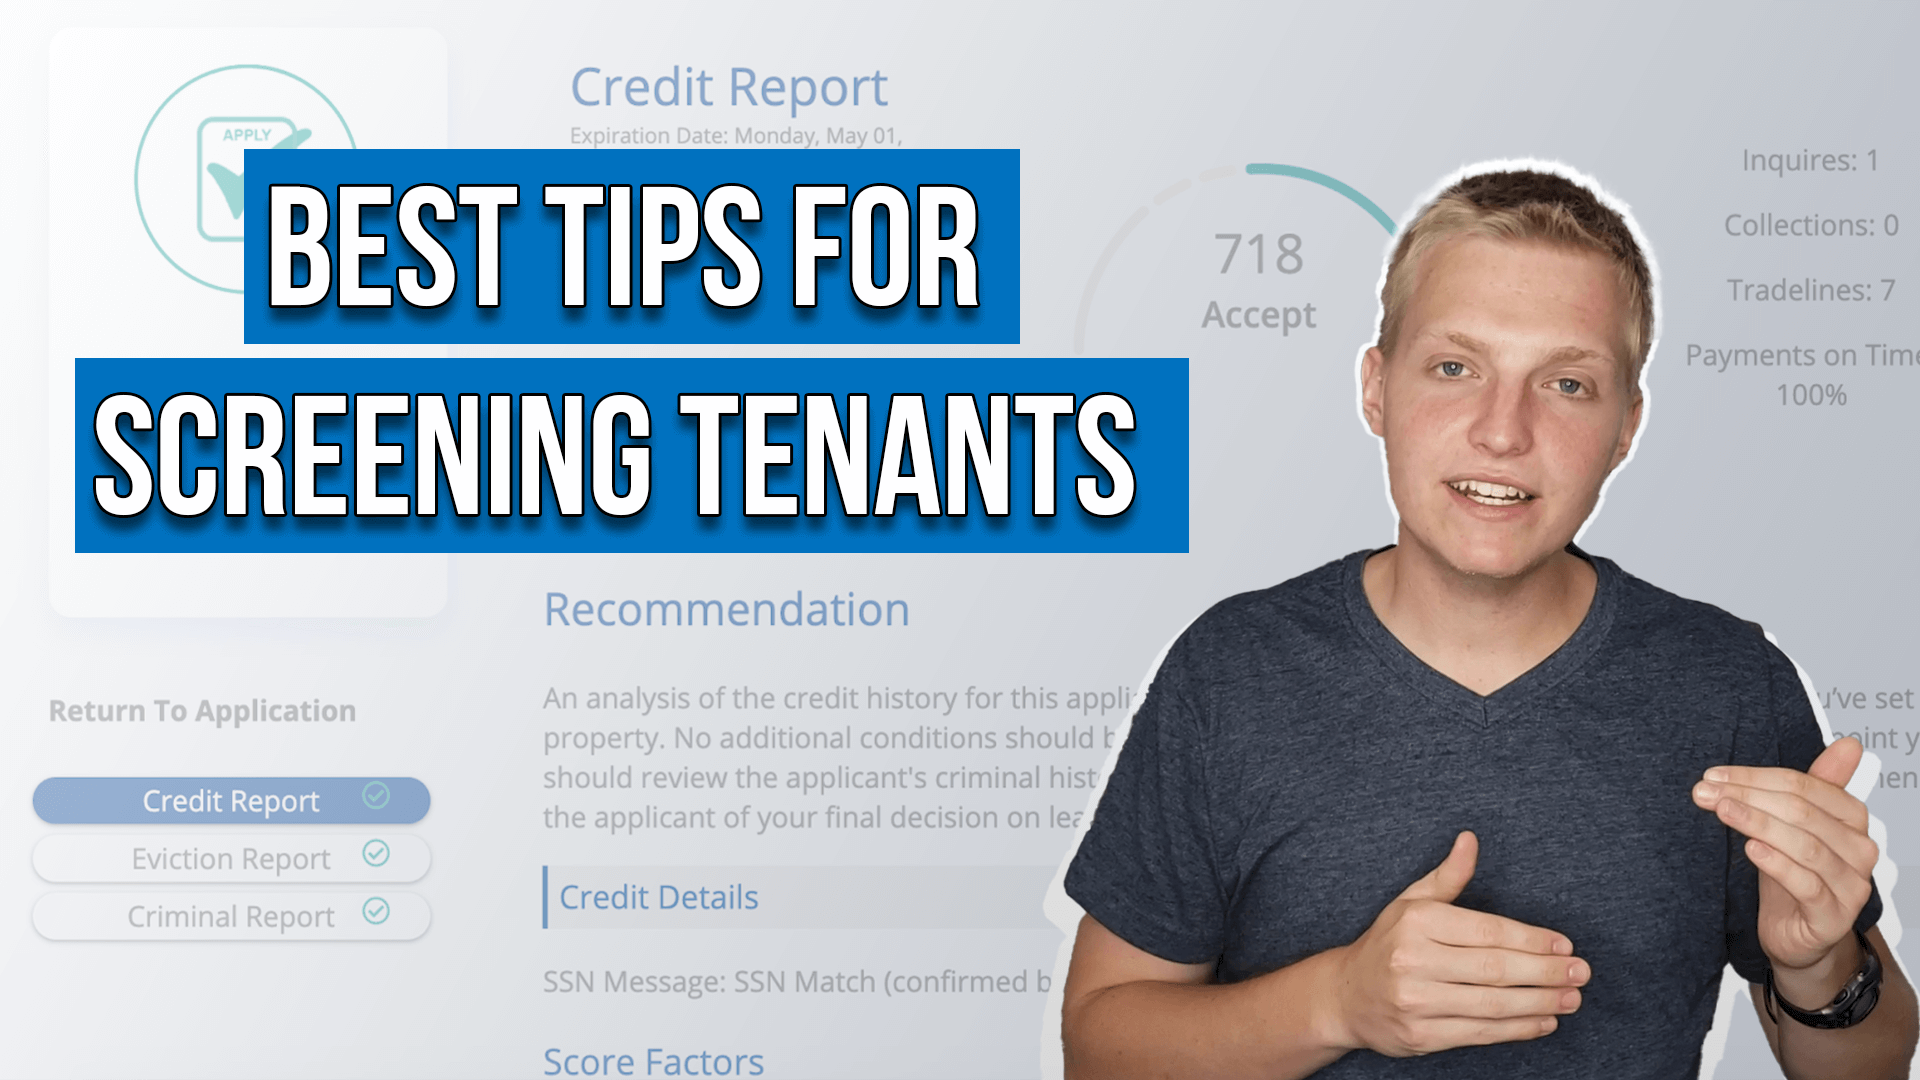 text on image reads: best tips for screening tenants